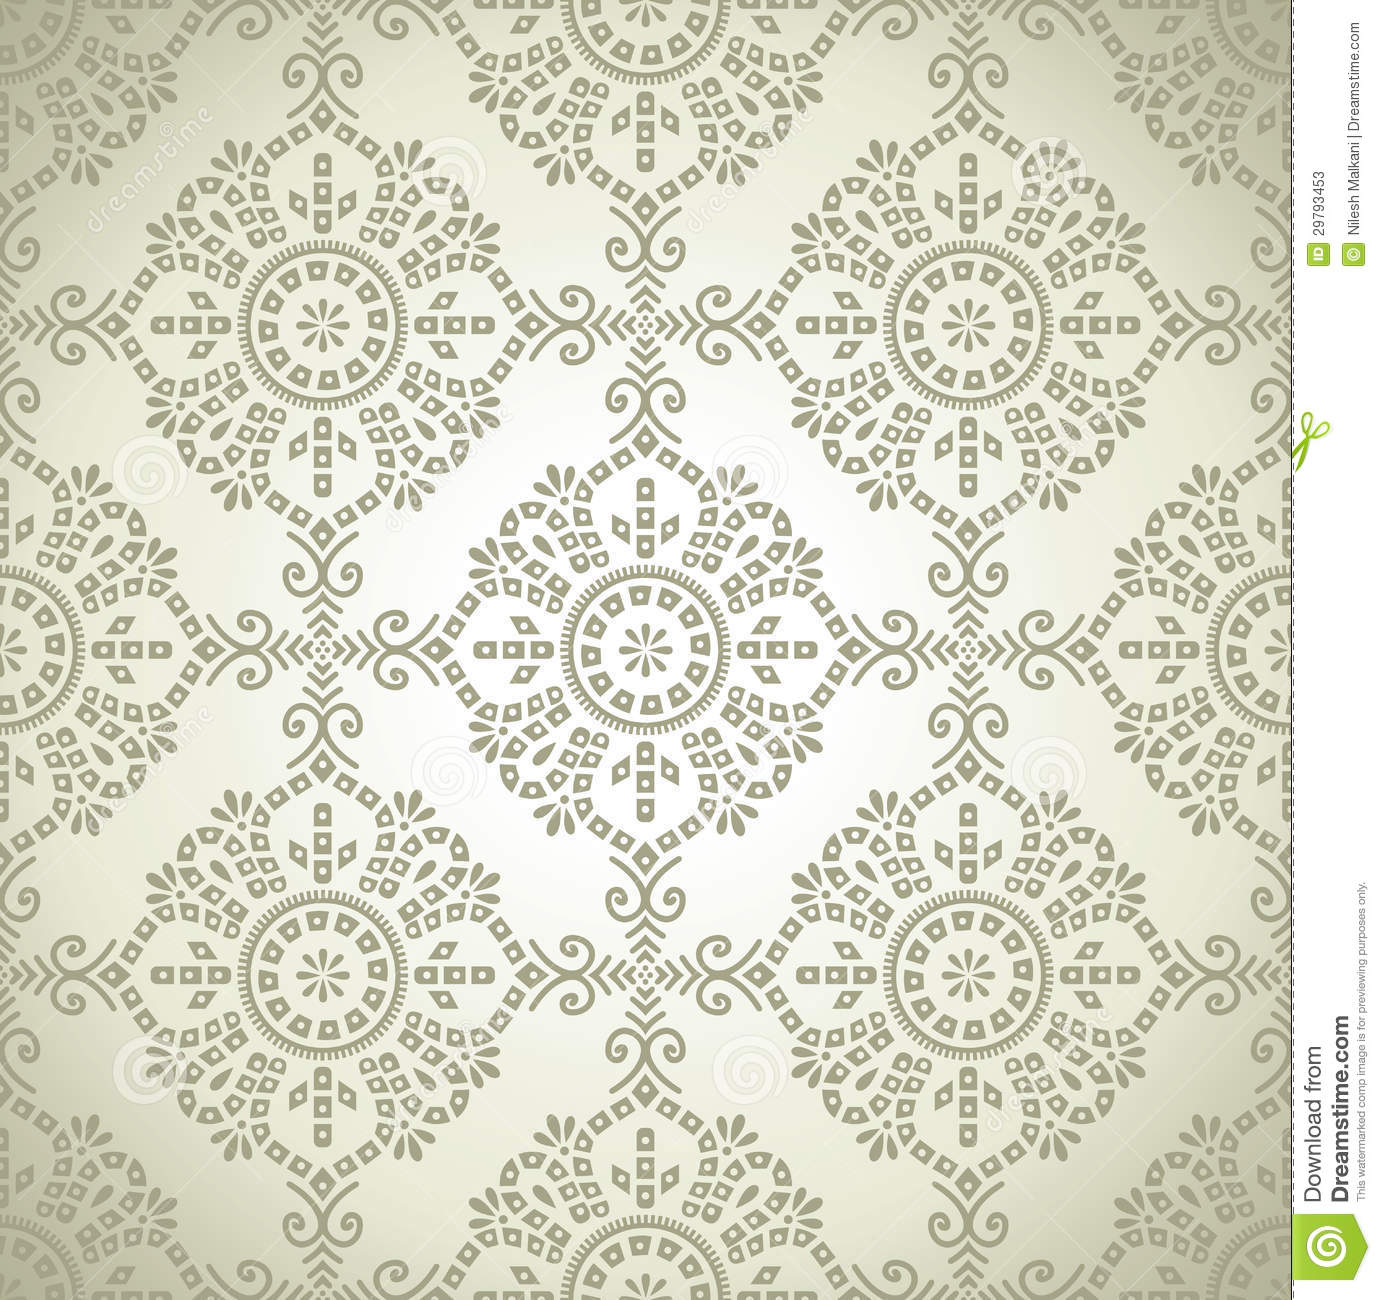 White bed sheet texture seamless - Royalty Free Stock Photo Pattern Seamless